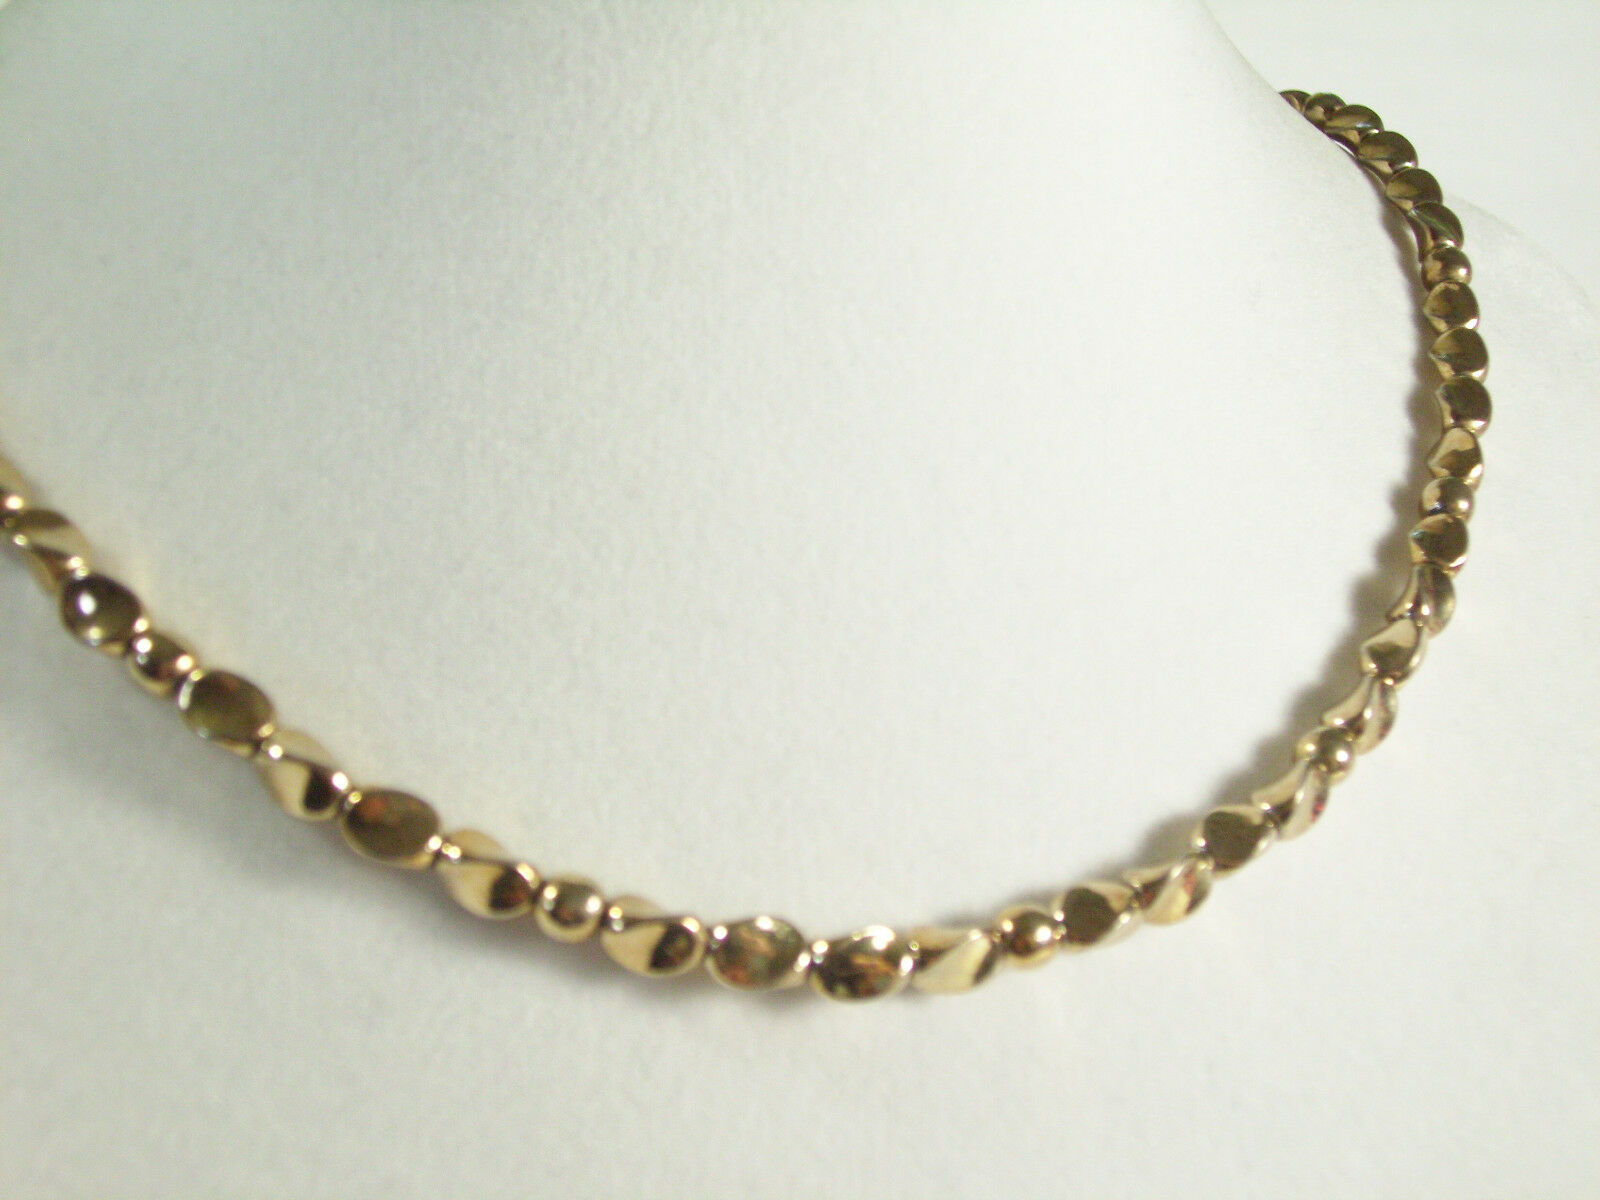 CITATION Gold Plated NUGGET Shape Chain Necklace Choker Vintage Estate Career